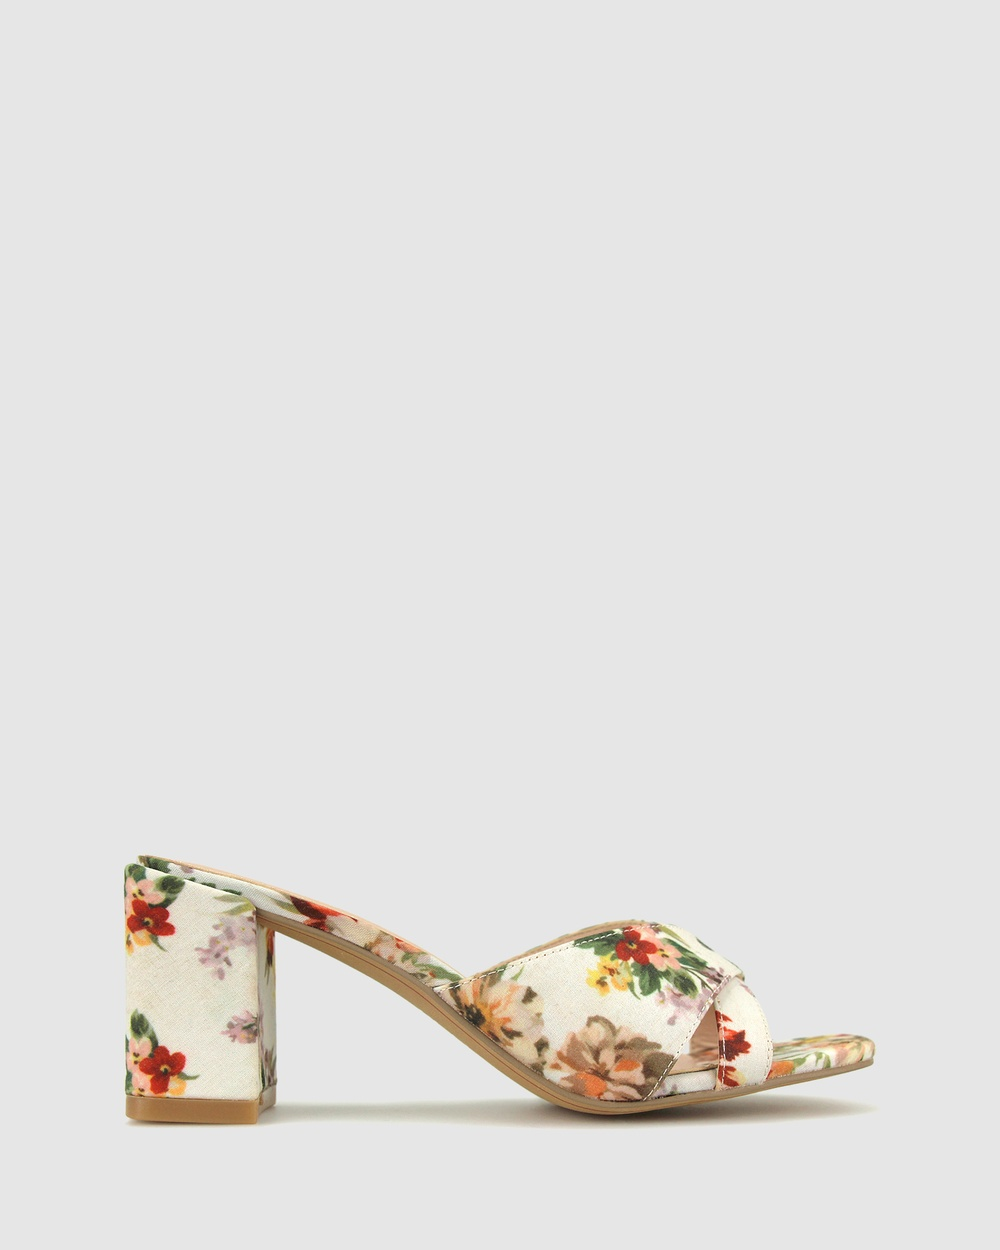 Betts Lillydale Block Heel Mules Sandals Floral